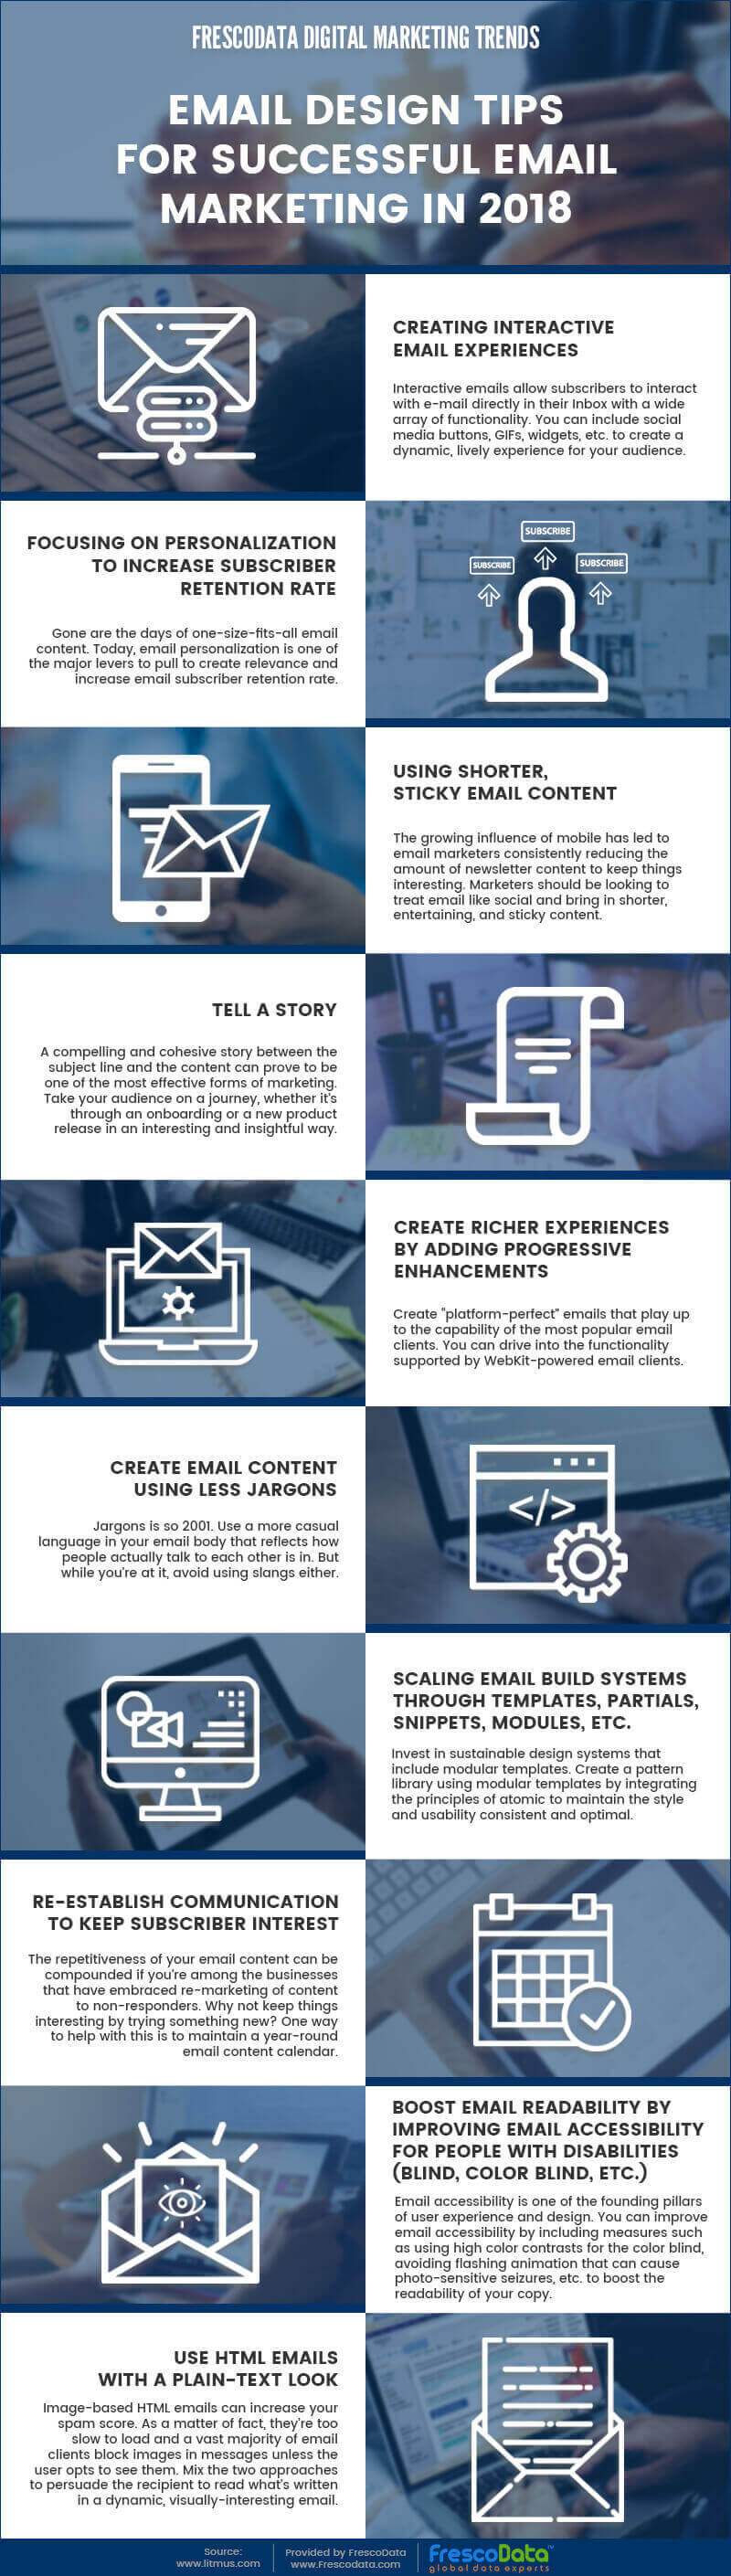 Email design tips for successful email marketing in 2018